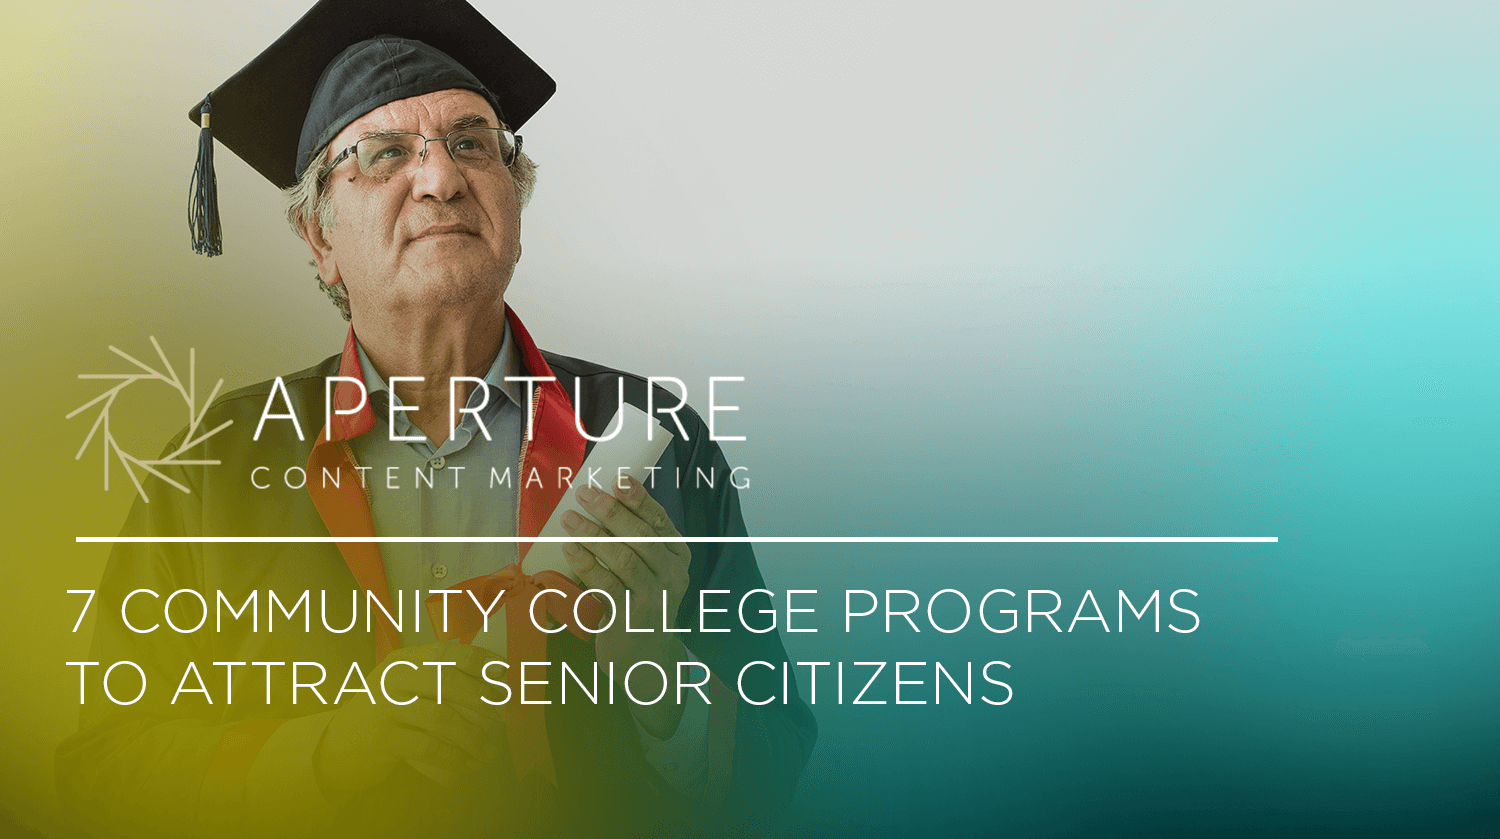 7 Community College Programs to Attract Senior Citizens